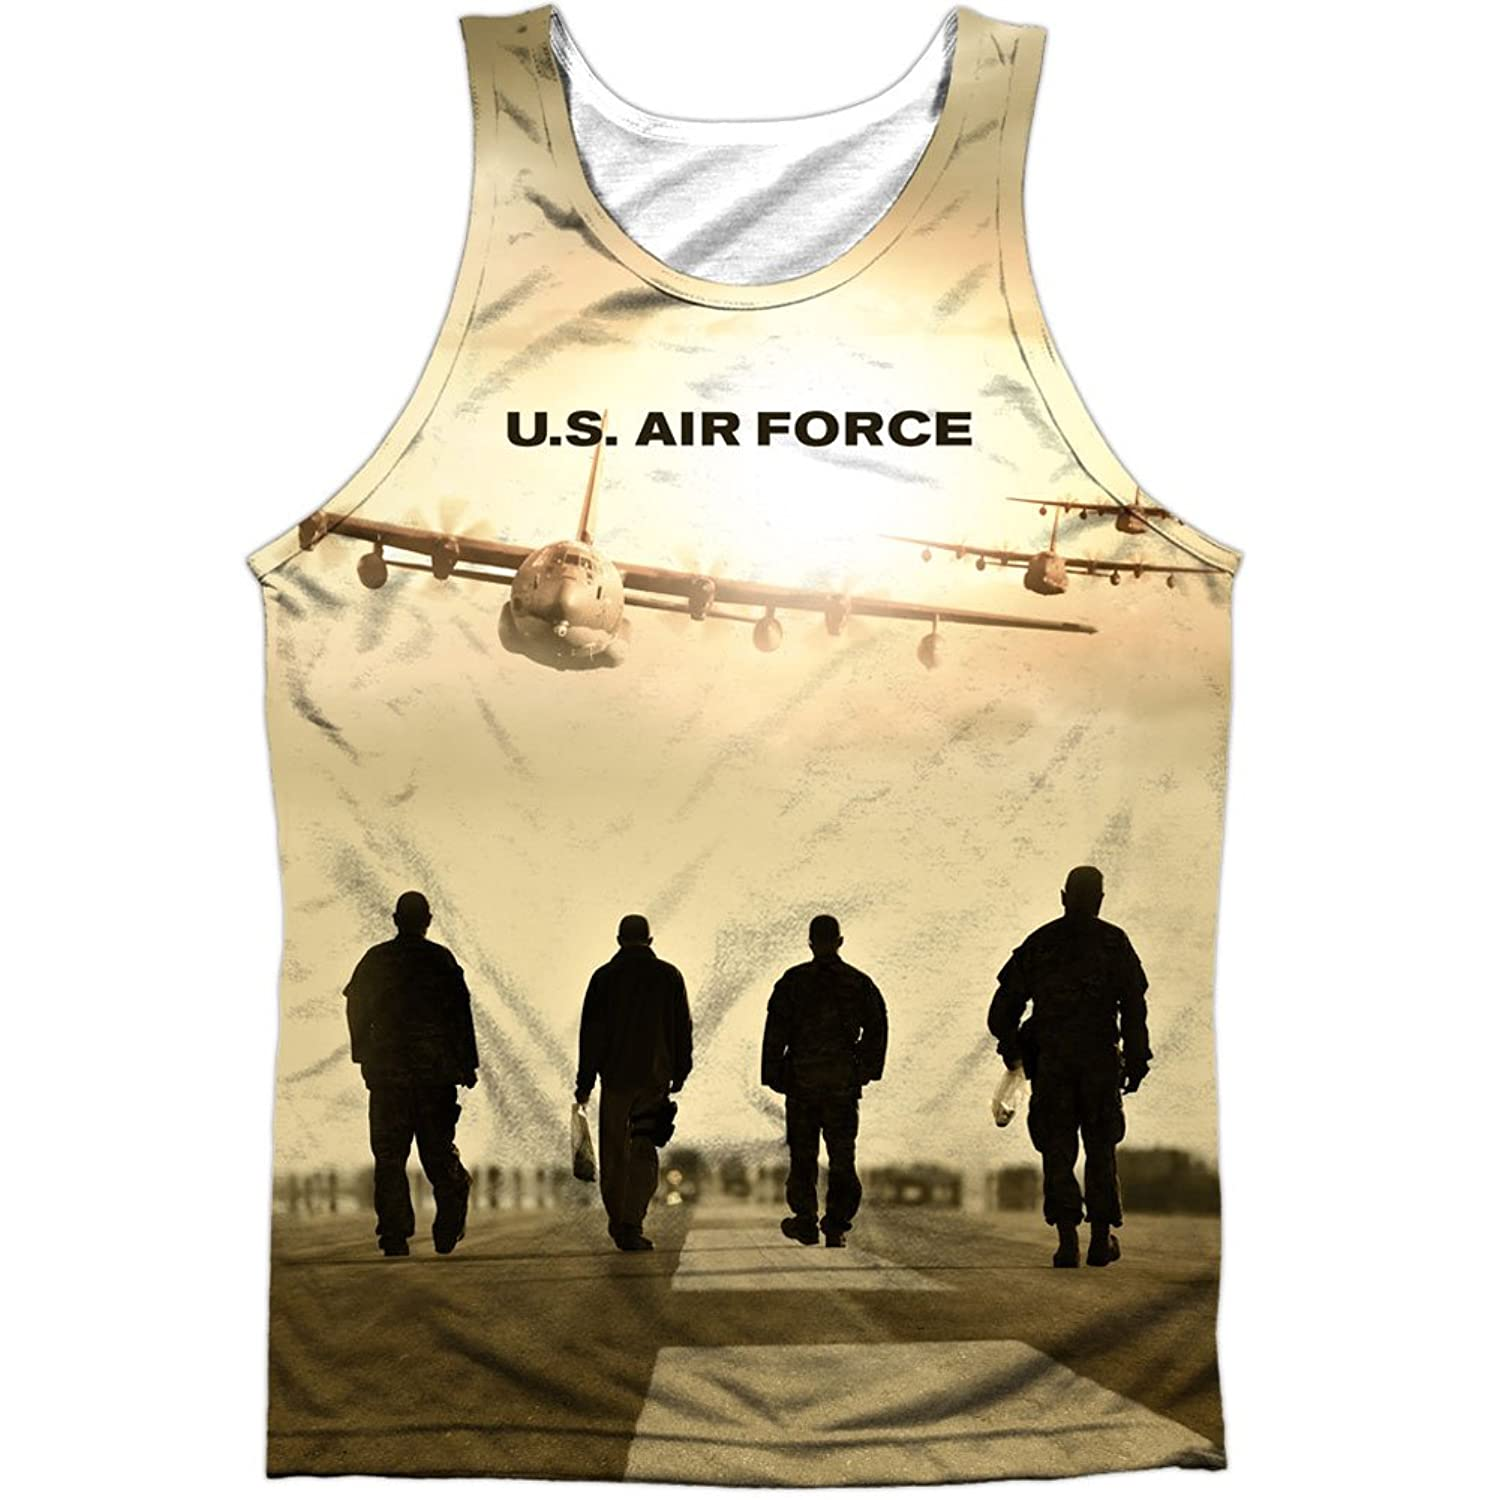 United States Armed Forces Air Force USAF Runway Walk Front Print Tank Top Shirt